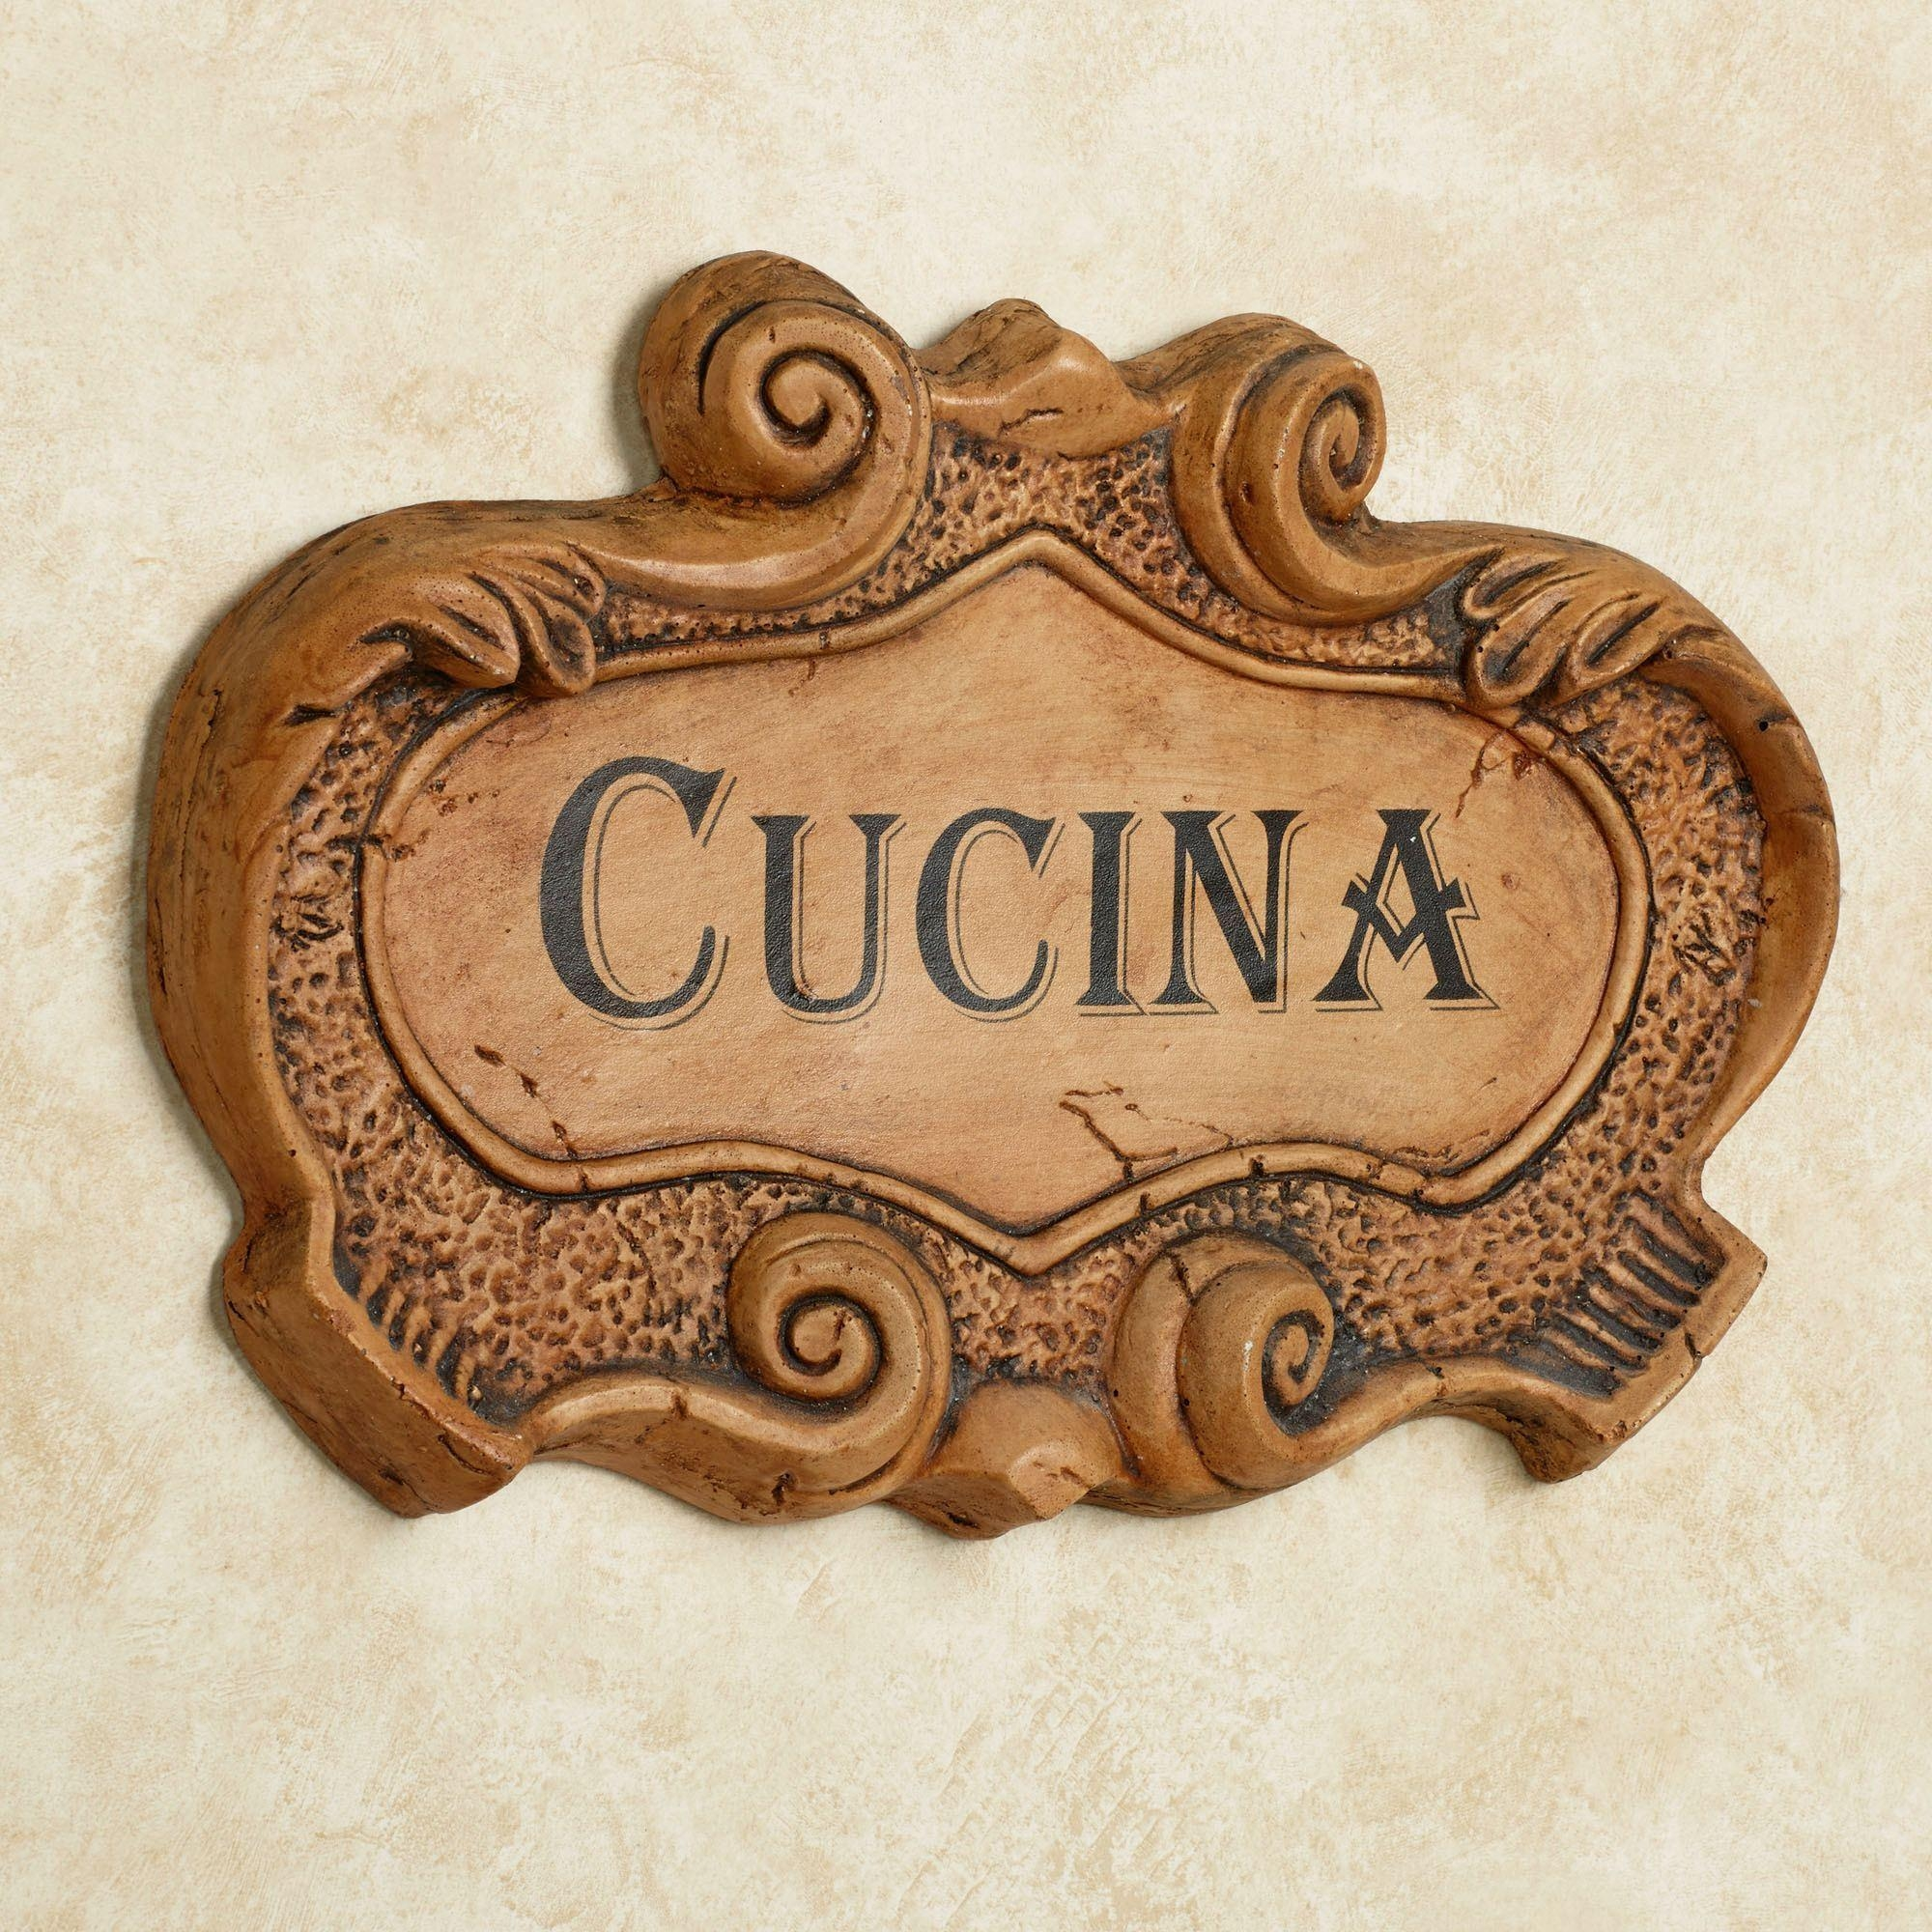 Wall Plaques | Touch Of Class Intended For Cucina Wall Art (Image 19 of 20)